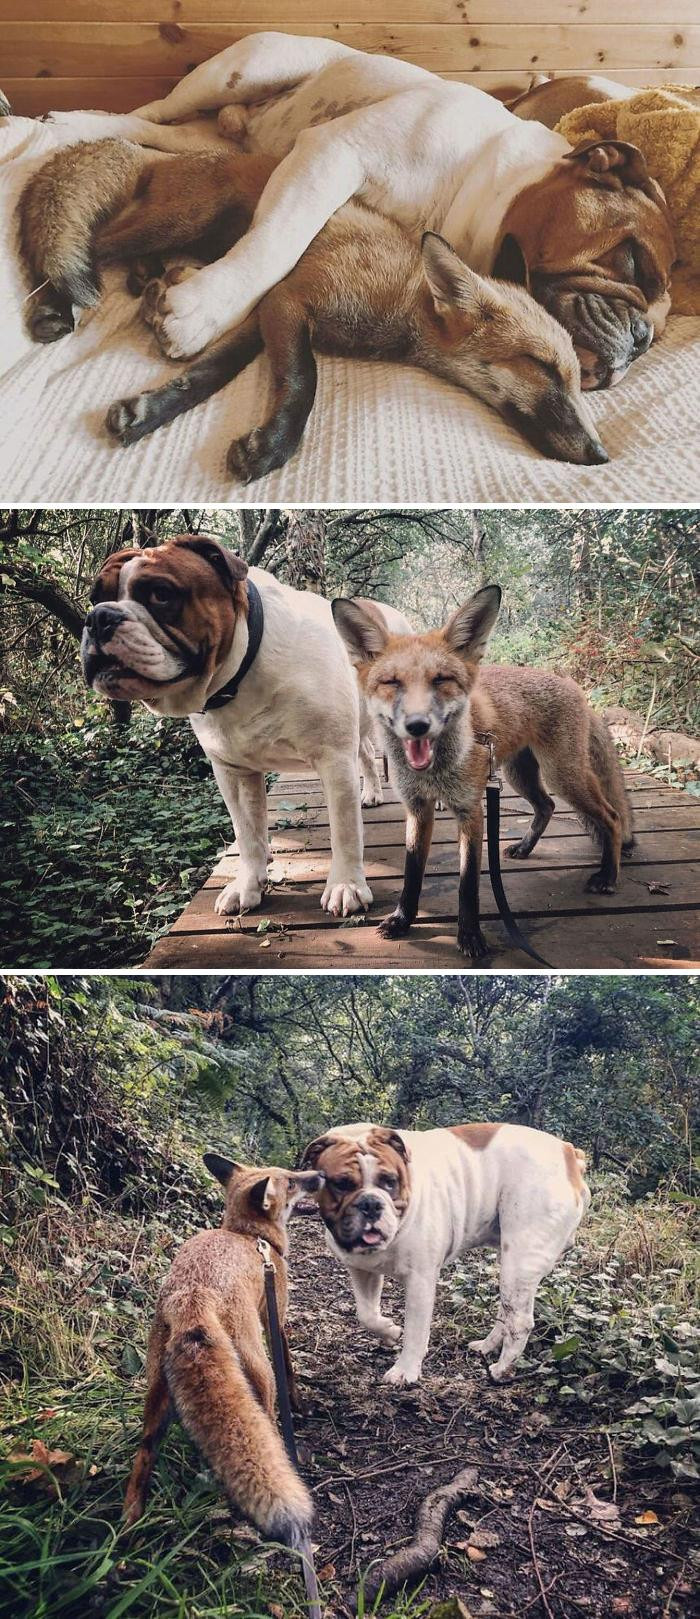 """2. Rescue Fox And A Bulldog Become Inseparable And Form A Real-Life """"The Fox And The Hound"""" Friendship"""